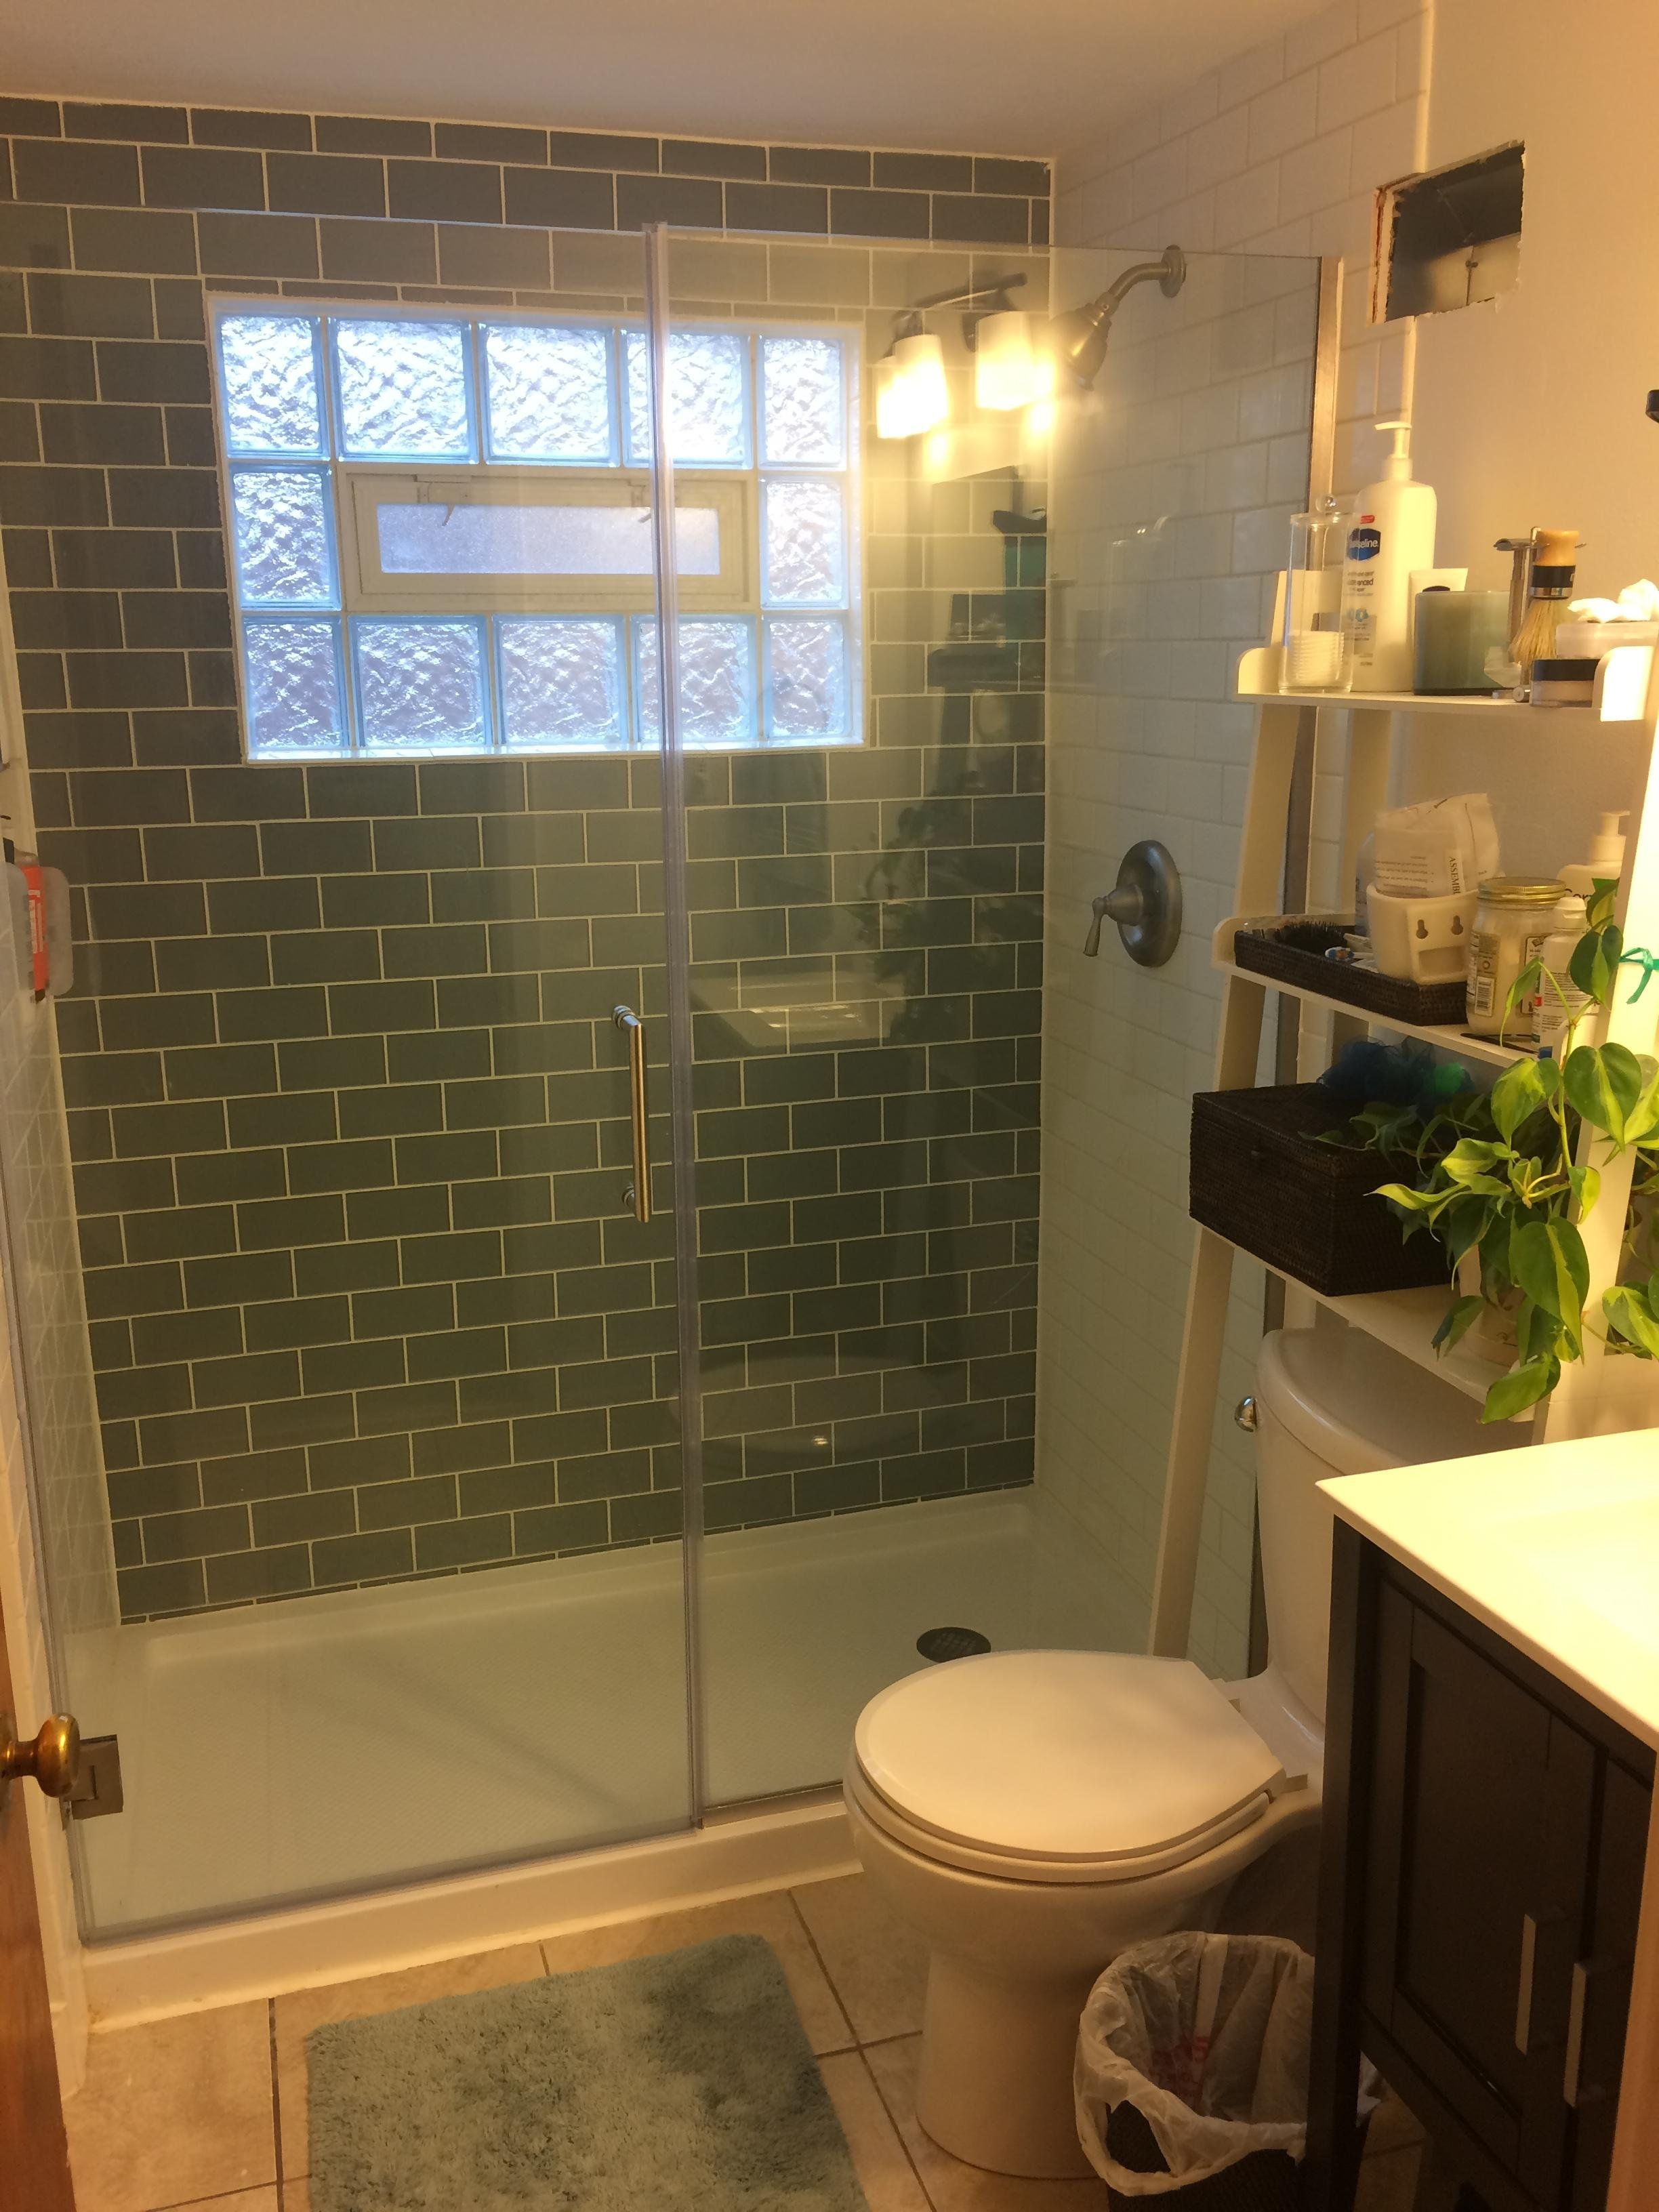 Complete Bathroom Remodel In An 80 Year Old House Also See What Happens If You Don T Properly W Complete Bathroom Remodel Complete Bathrooms Bathrooms Remodel